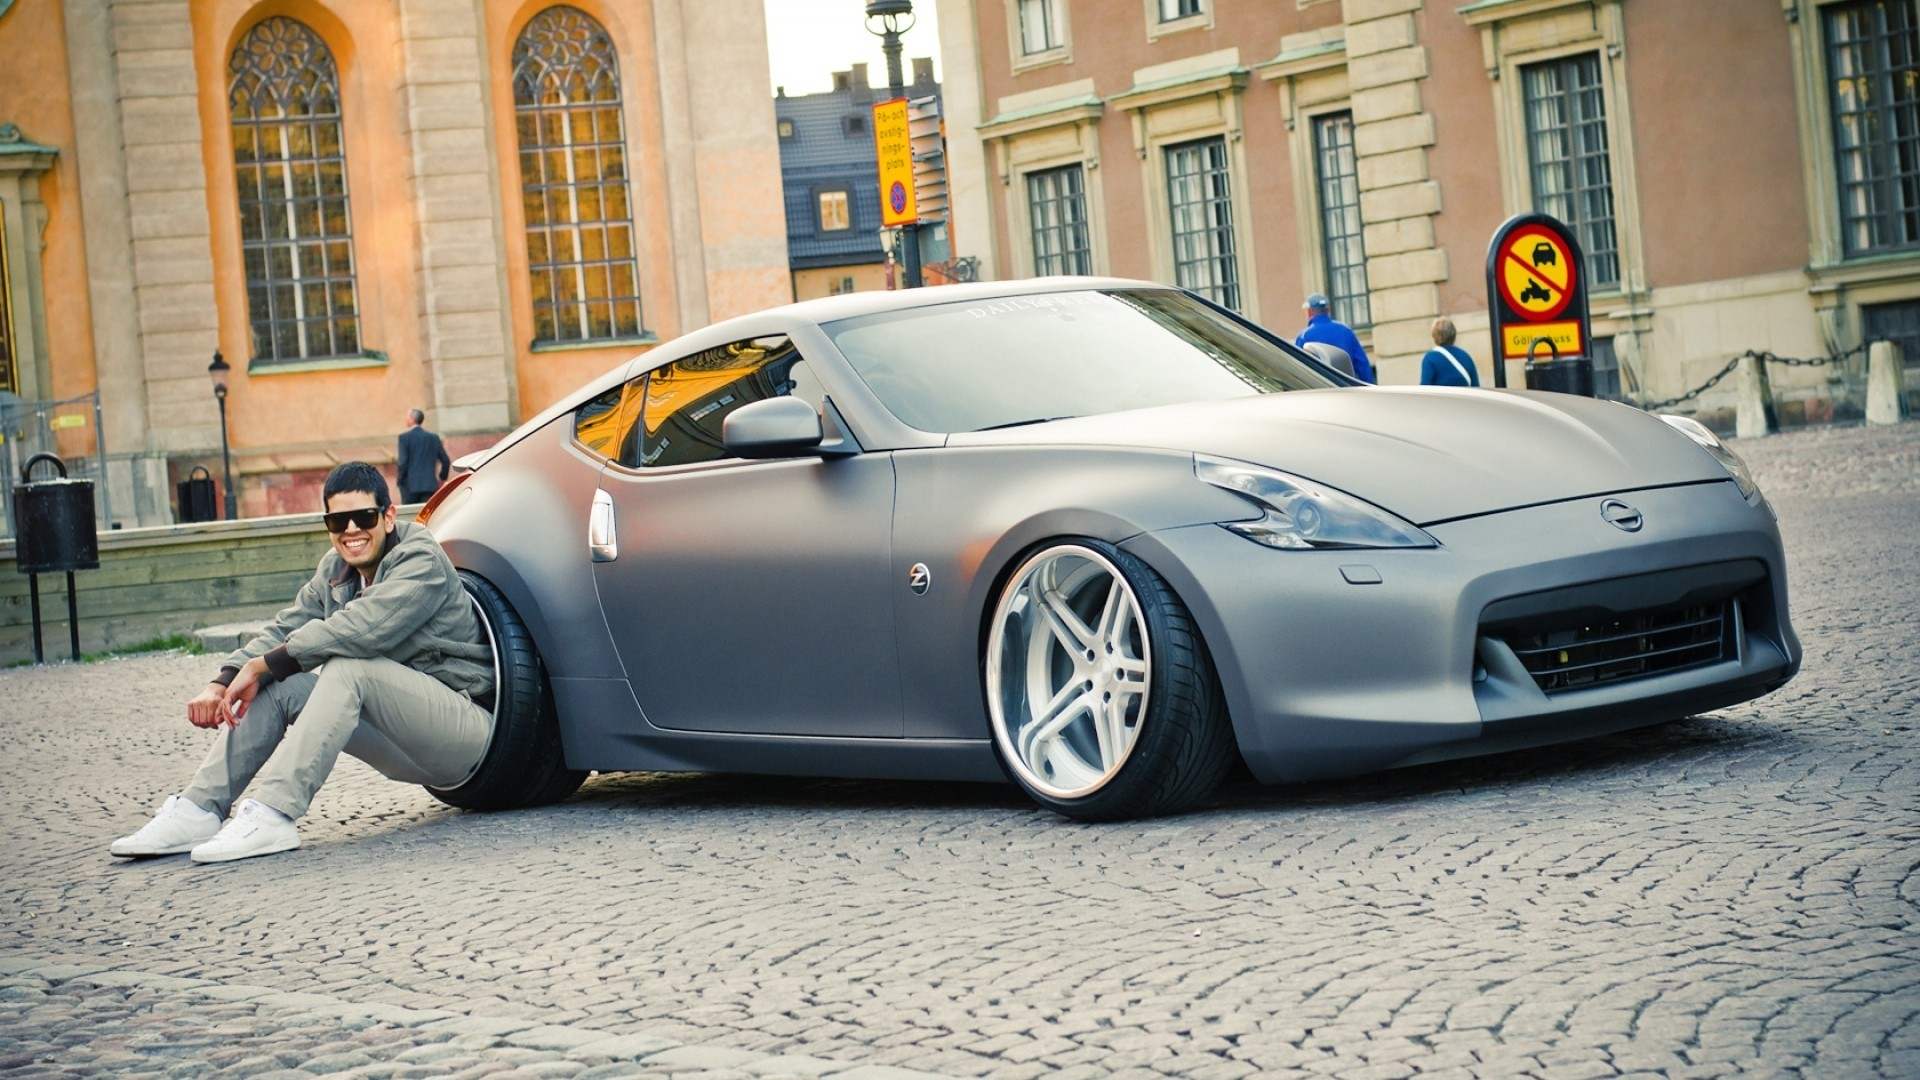 Nissan z roadster UK version Vehicle HD Wallpaper for iPhone